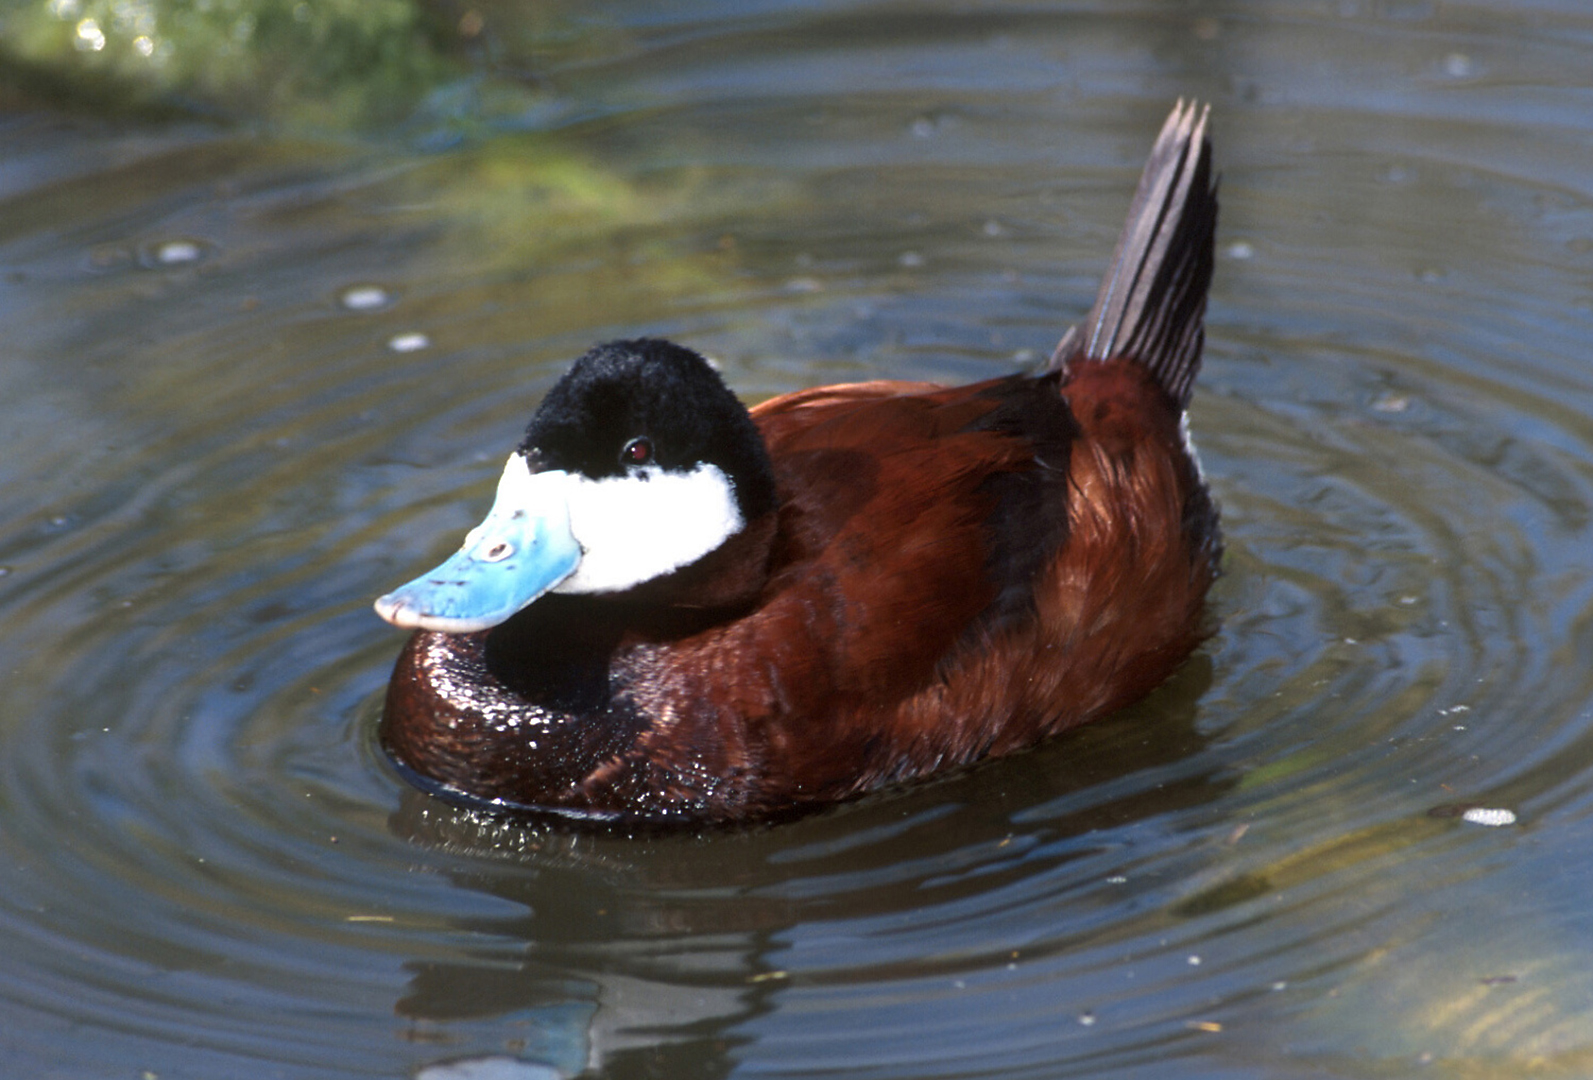 Ruddy duck on pond.